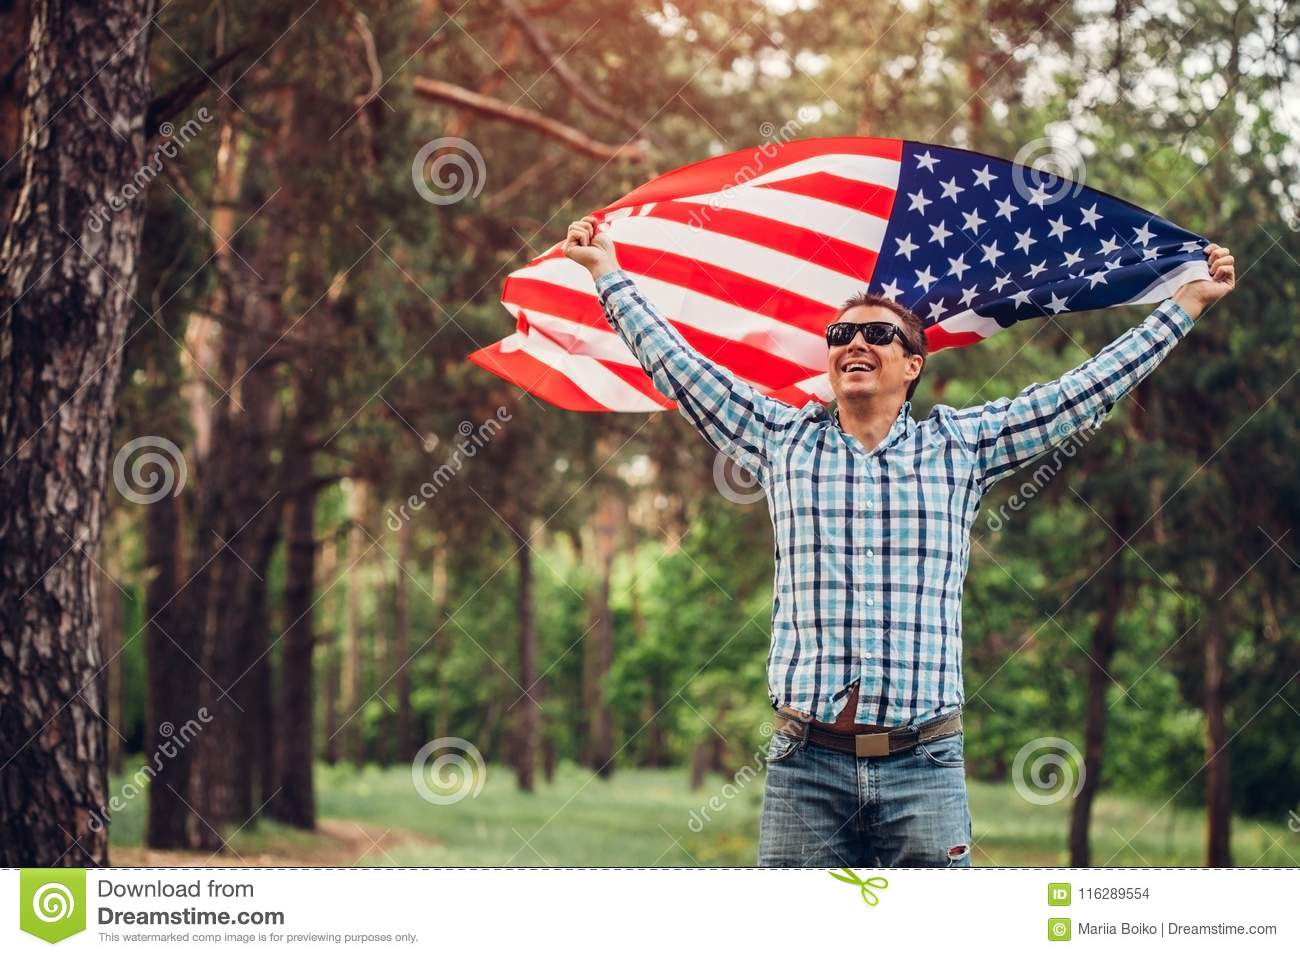 Happy man running with USA flag. Celebrating Independence Day of America. July 4th. Man having fun